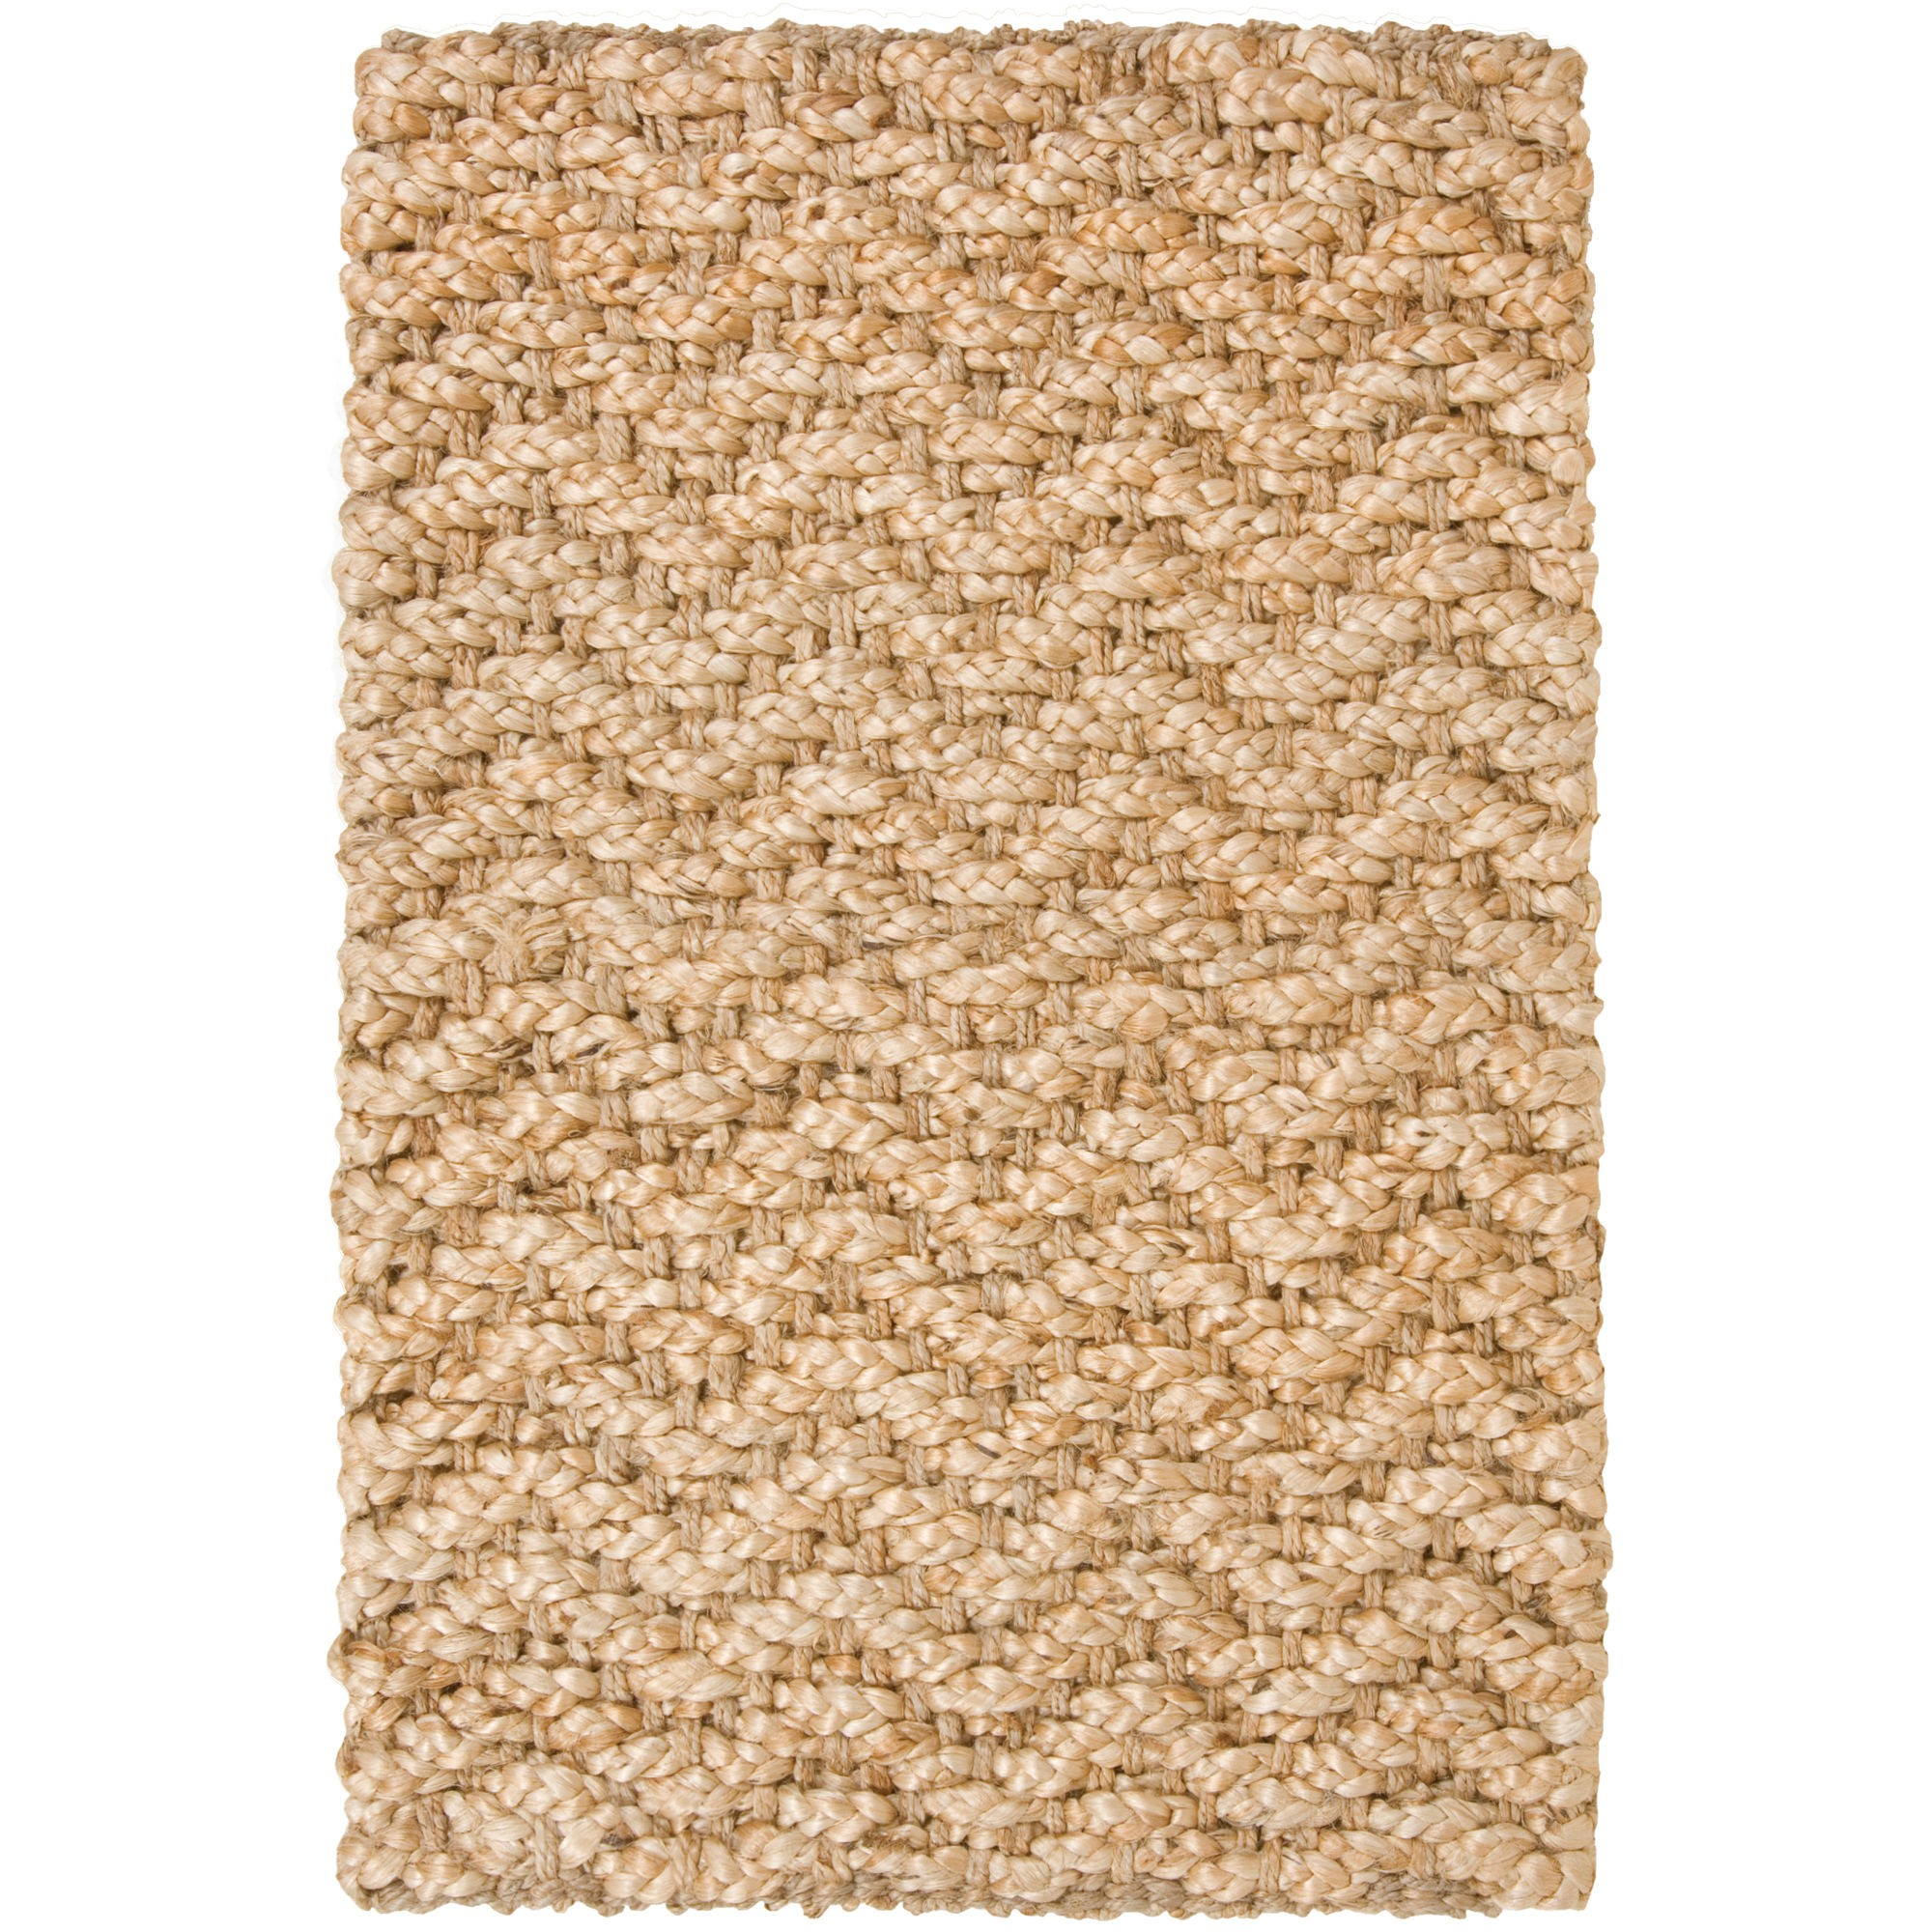 Cute braided rug for floorings and rugs ideas with round braided rugs and braided area rugs